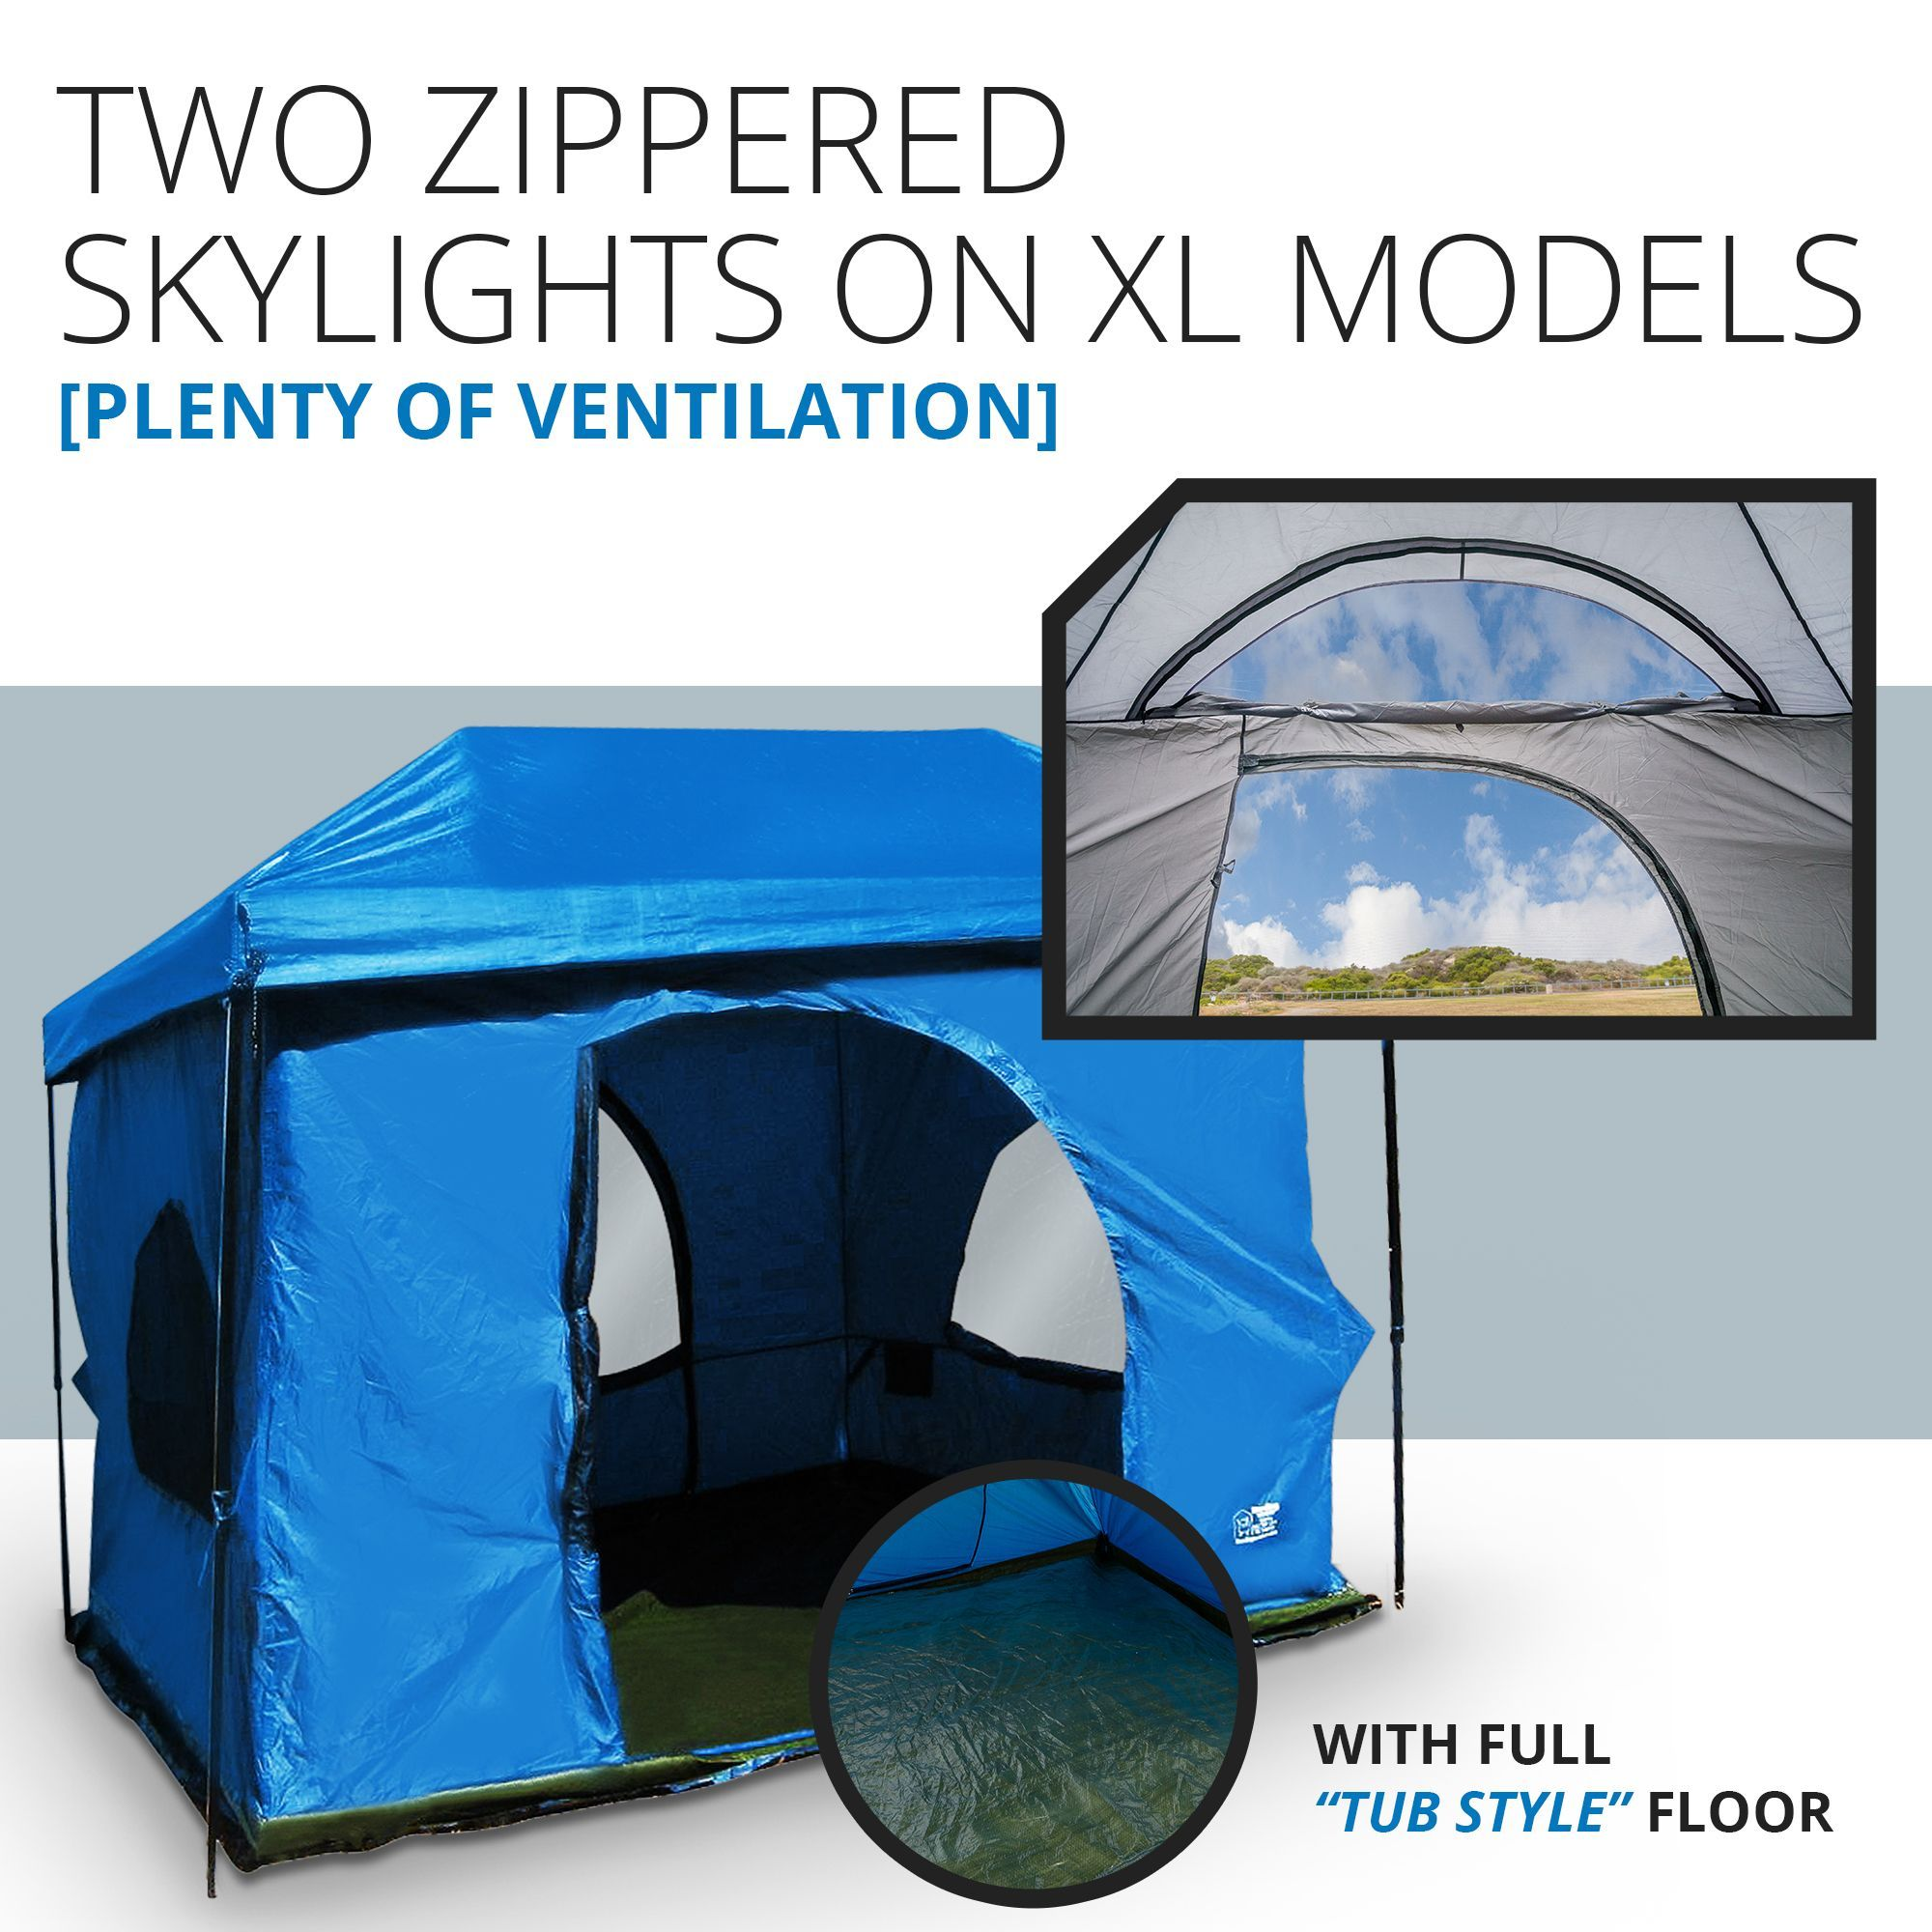 Affordable C&ing / Gl&ing tent with almost 9 feet of head room 2 doors   sc 1 st  Pinterest & Affordable Camping / Glamping tent with almost 9 feet of head room ...